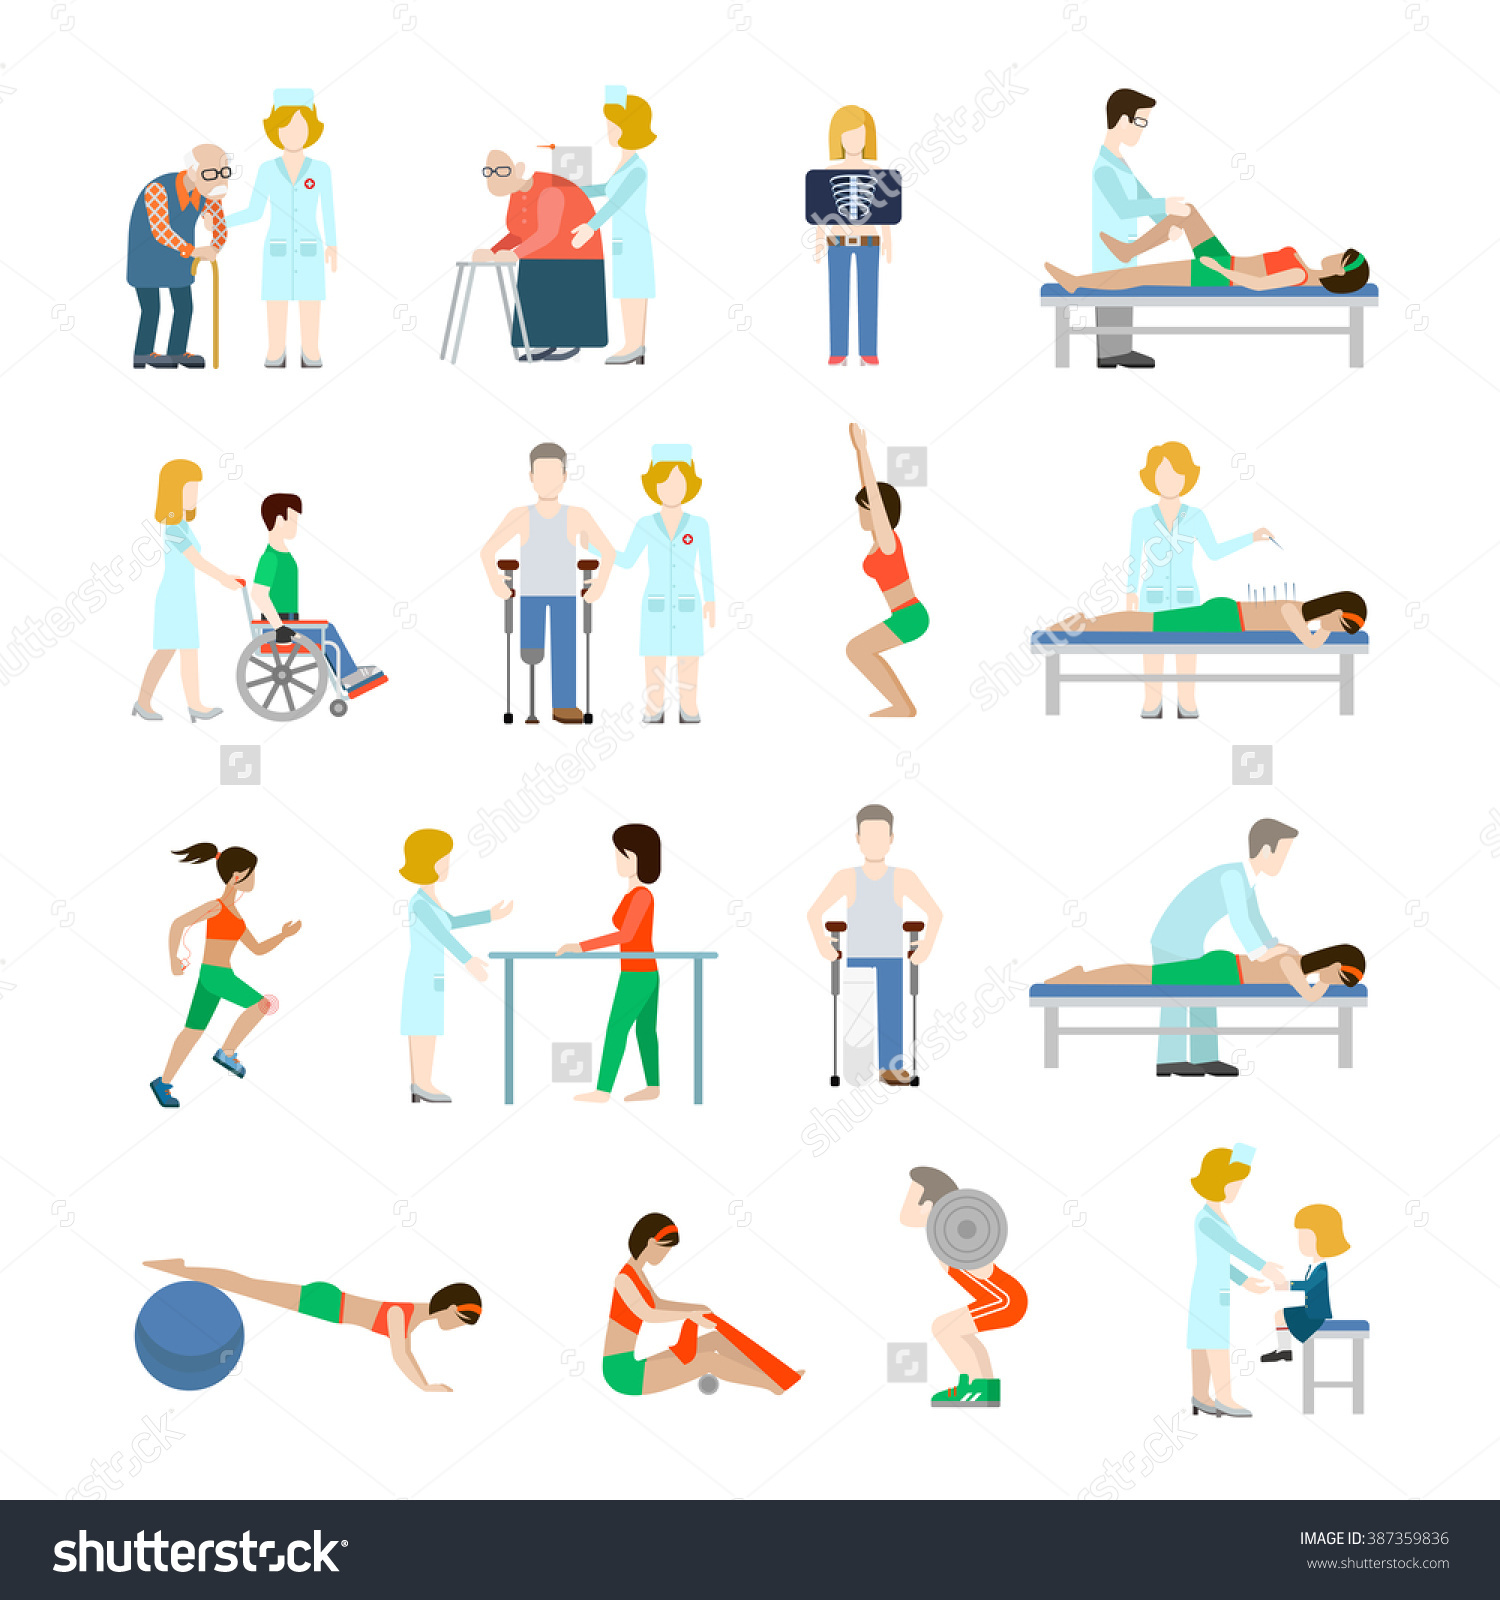 Flat Style Modern People Icons Oldies Stock Vector 387359836.